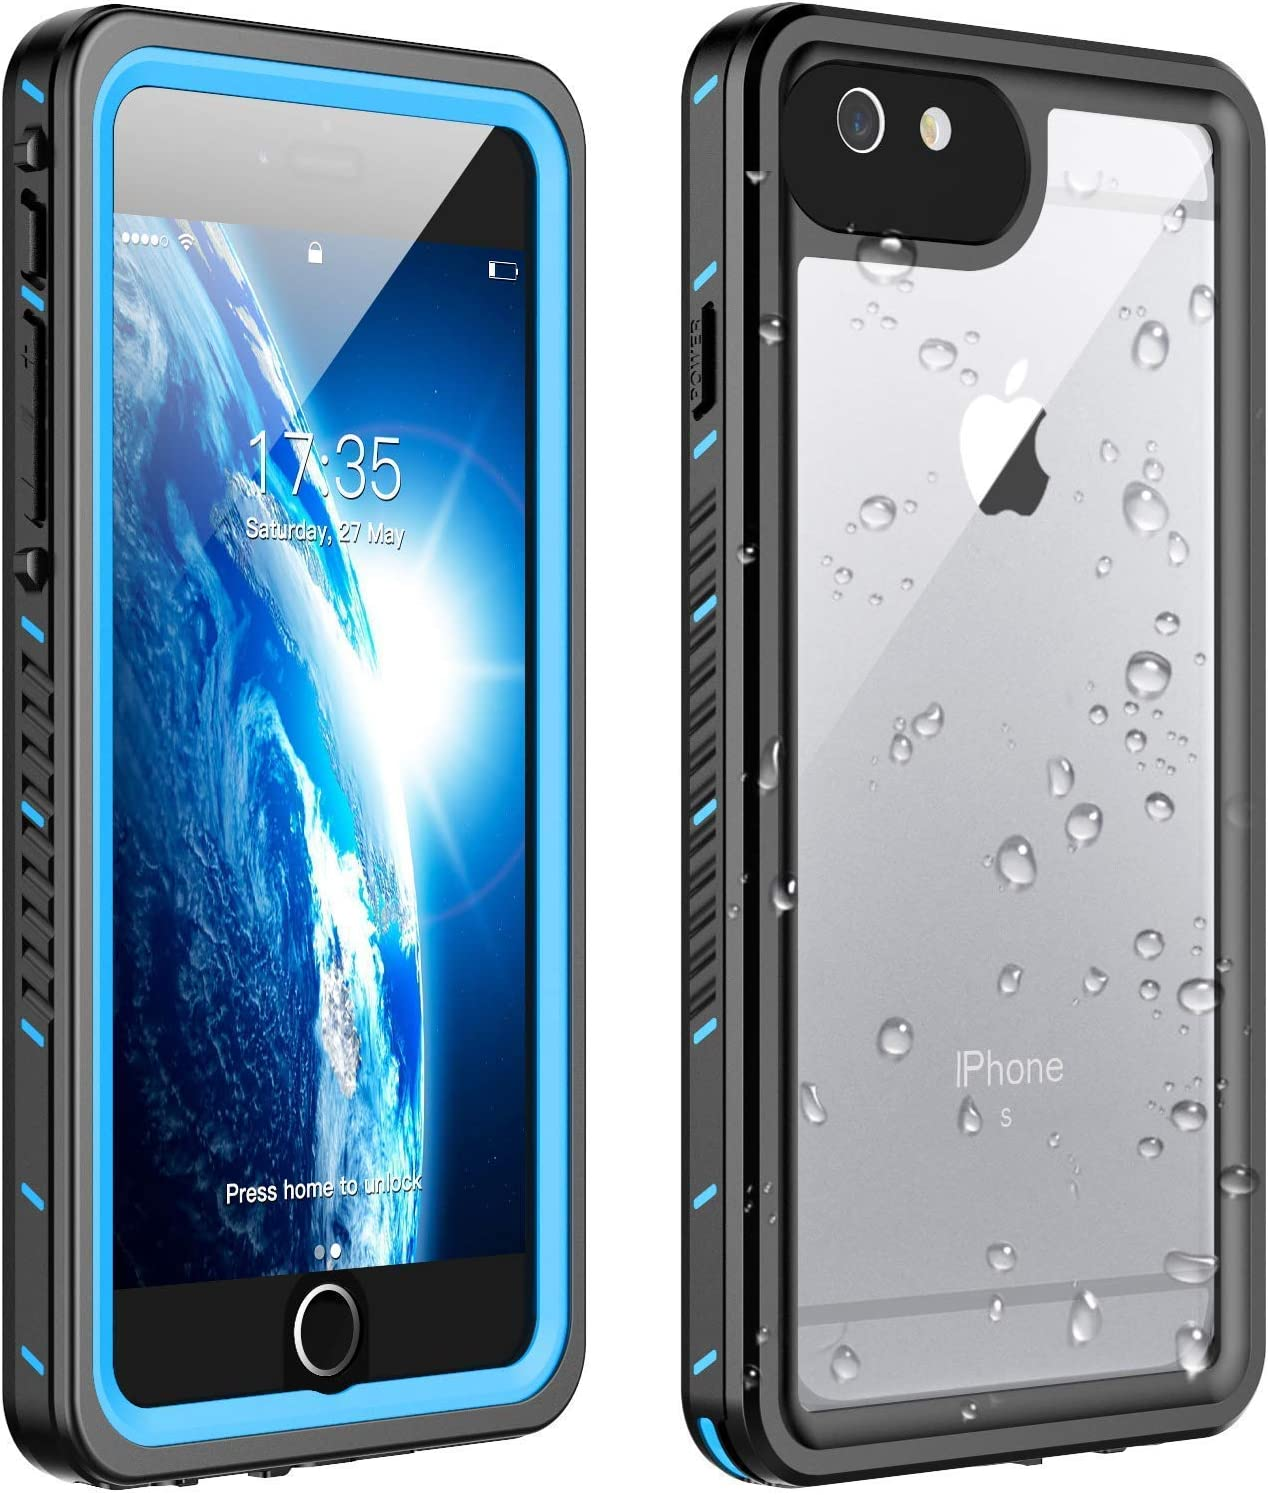 Huakay iPhone 6s Plus Waterproof Case iPhone 6 Plus Waterproof Case, Shockproof Dirtproof 360° Full Body Protection Waterproof for iPhone 6s Plus/iPhone 6 Plus